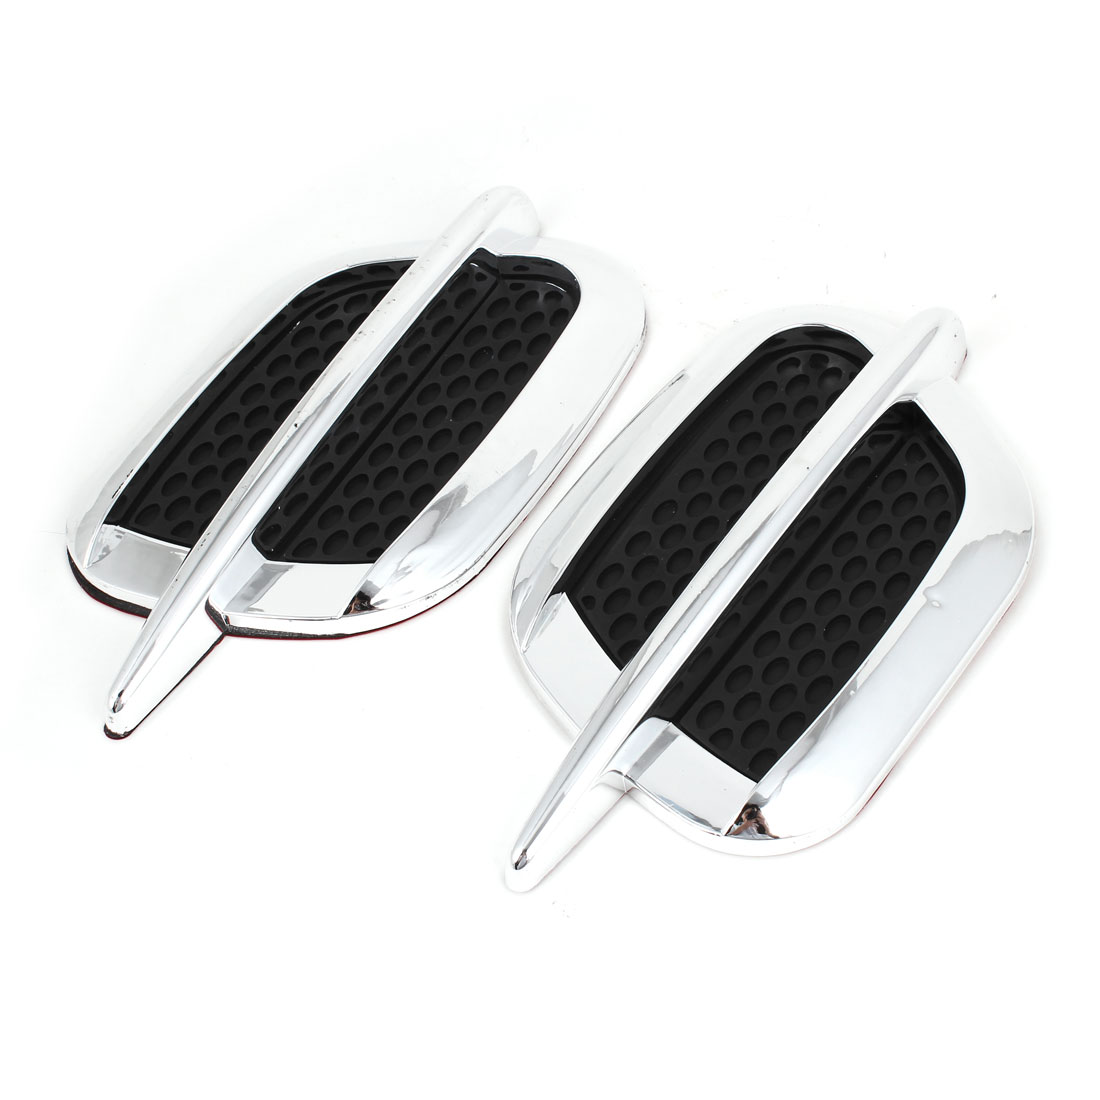 2 Pcs Shield Shape Black Silver Tone Air Flow Vent Fender Stickers for Car